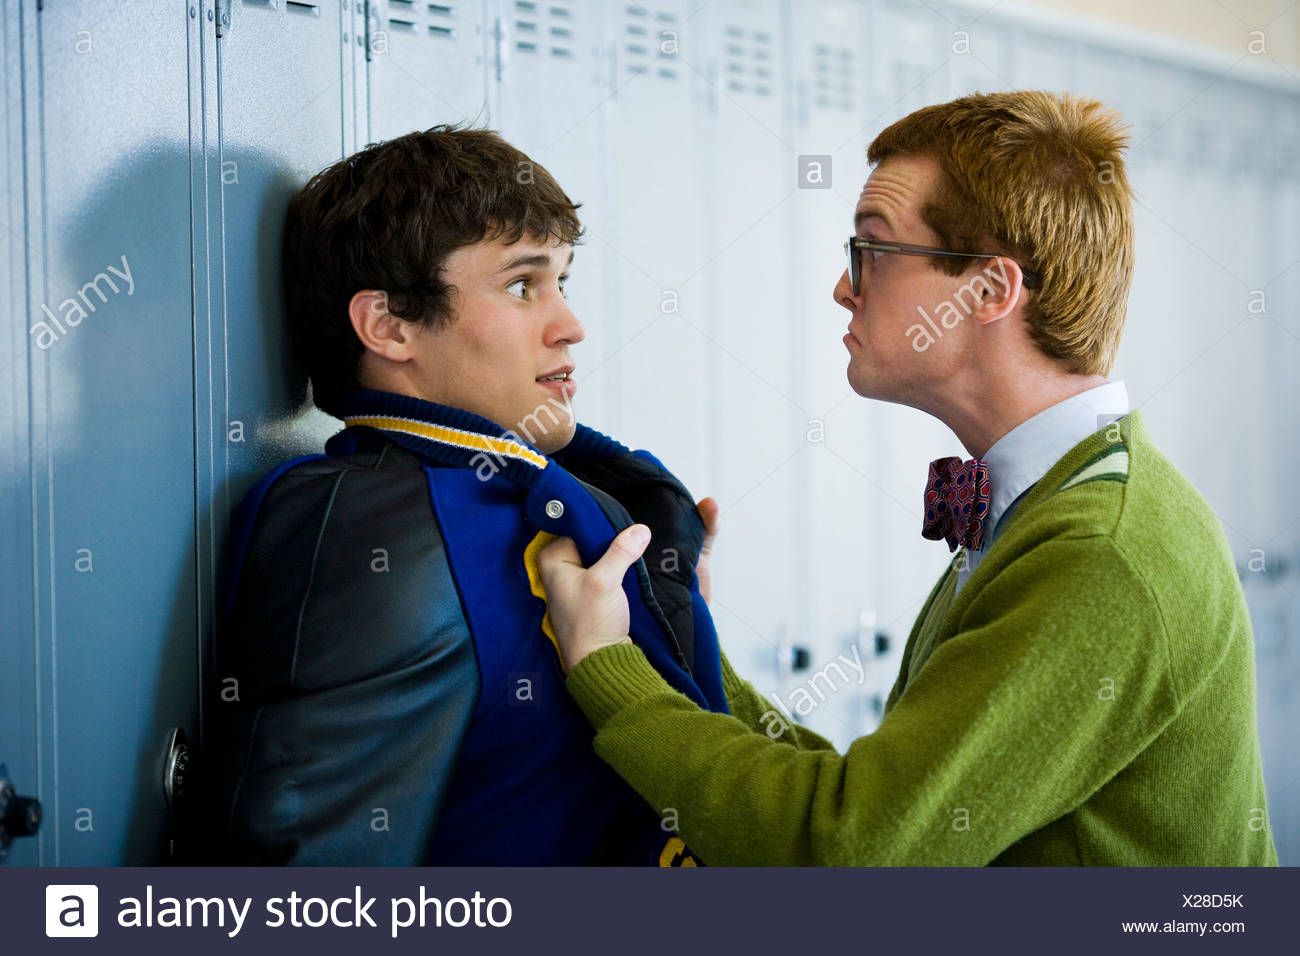 Nerd picking on jock. - Stock Image